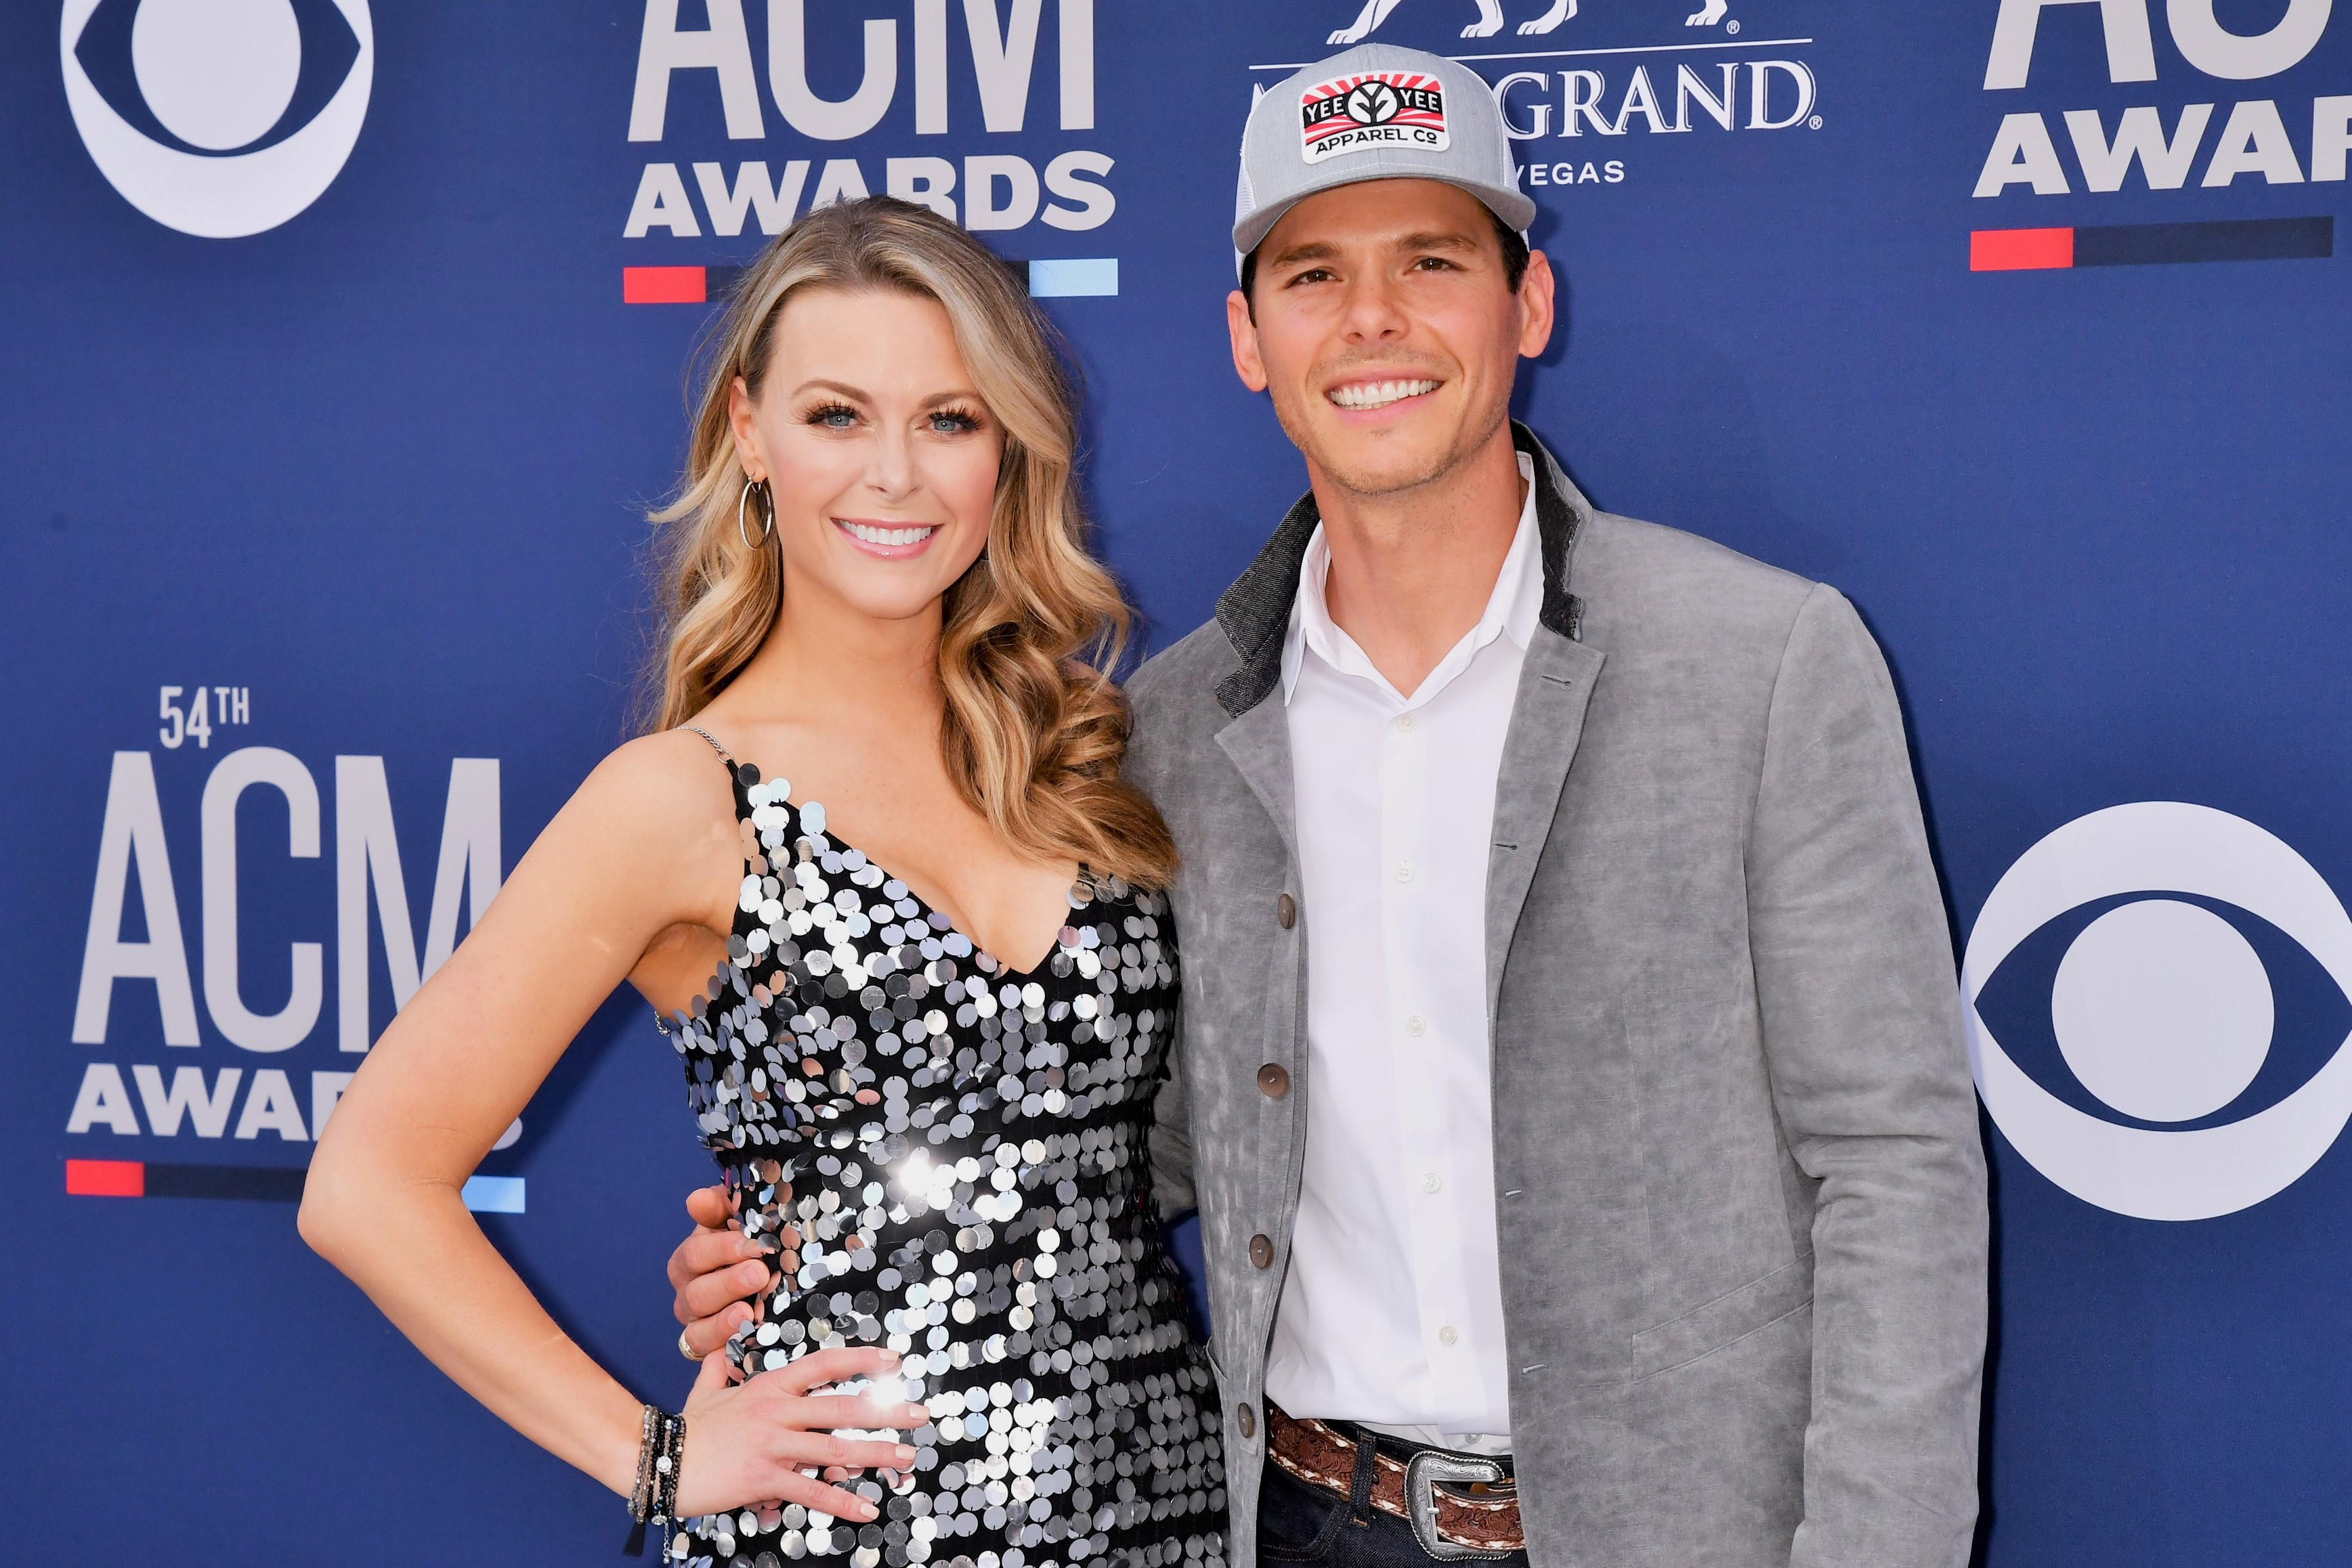 Granger Smith's Son River, 3, Dies in 'Tragic Accident': We're 'Devastated and Heartbroken'